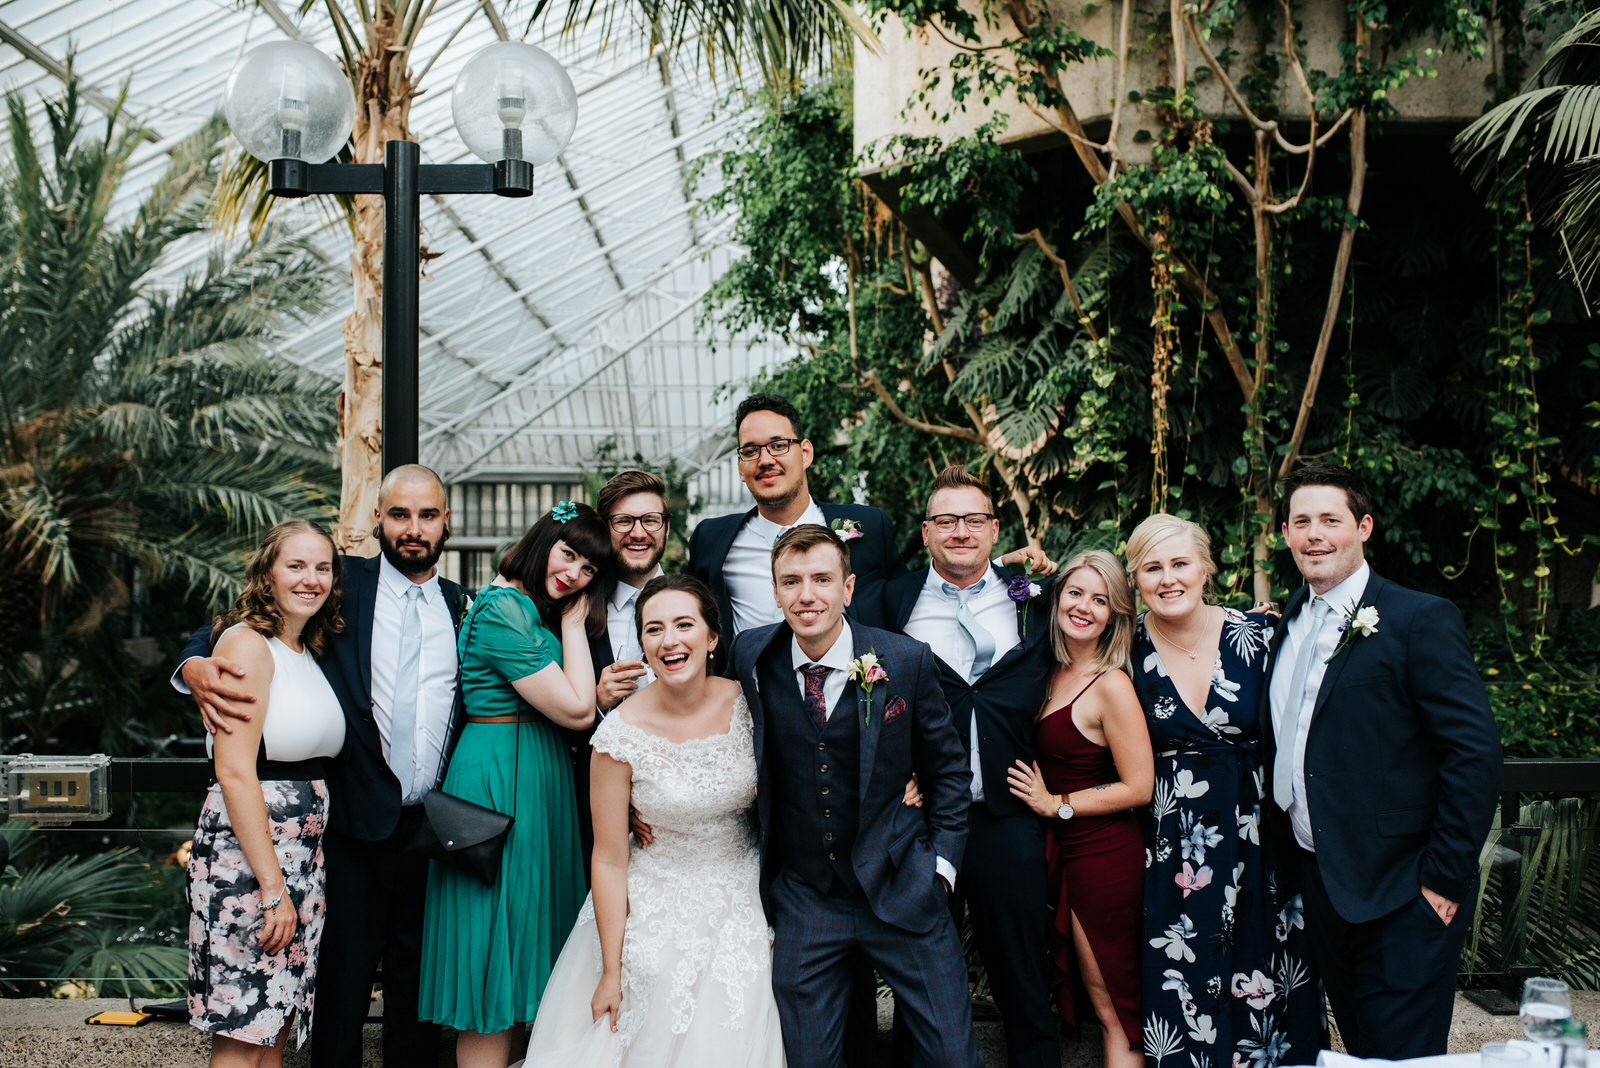 Posed group photograph of bride, groom and a variety of friends